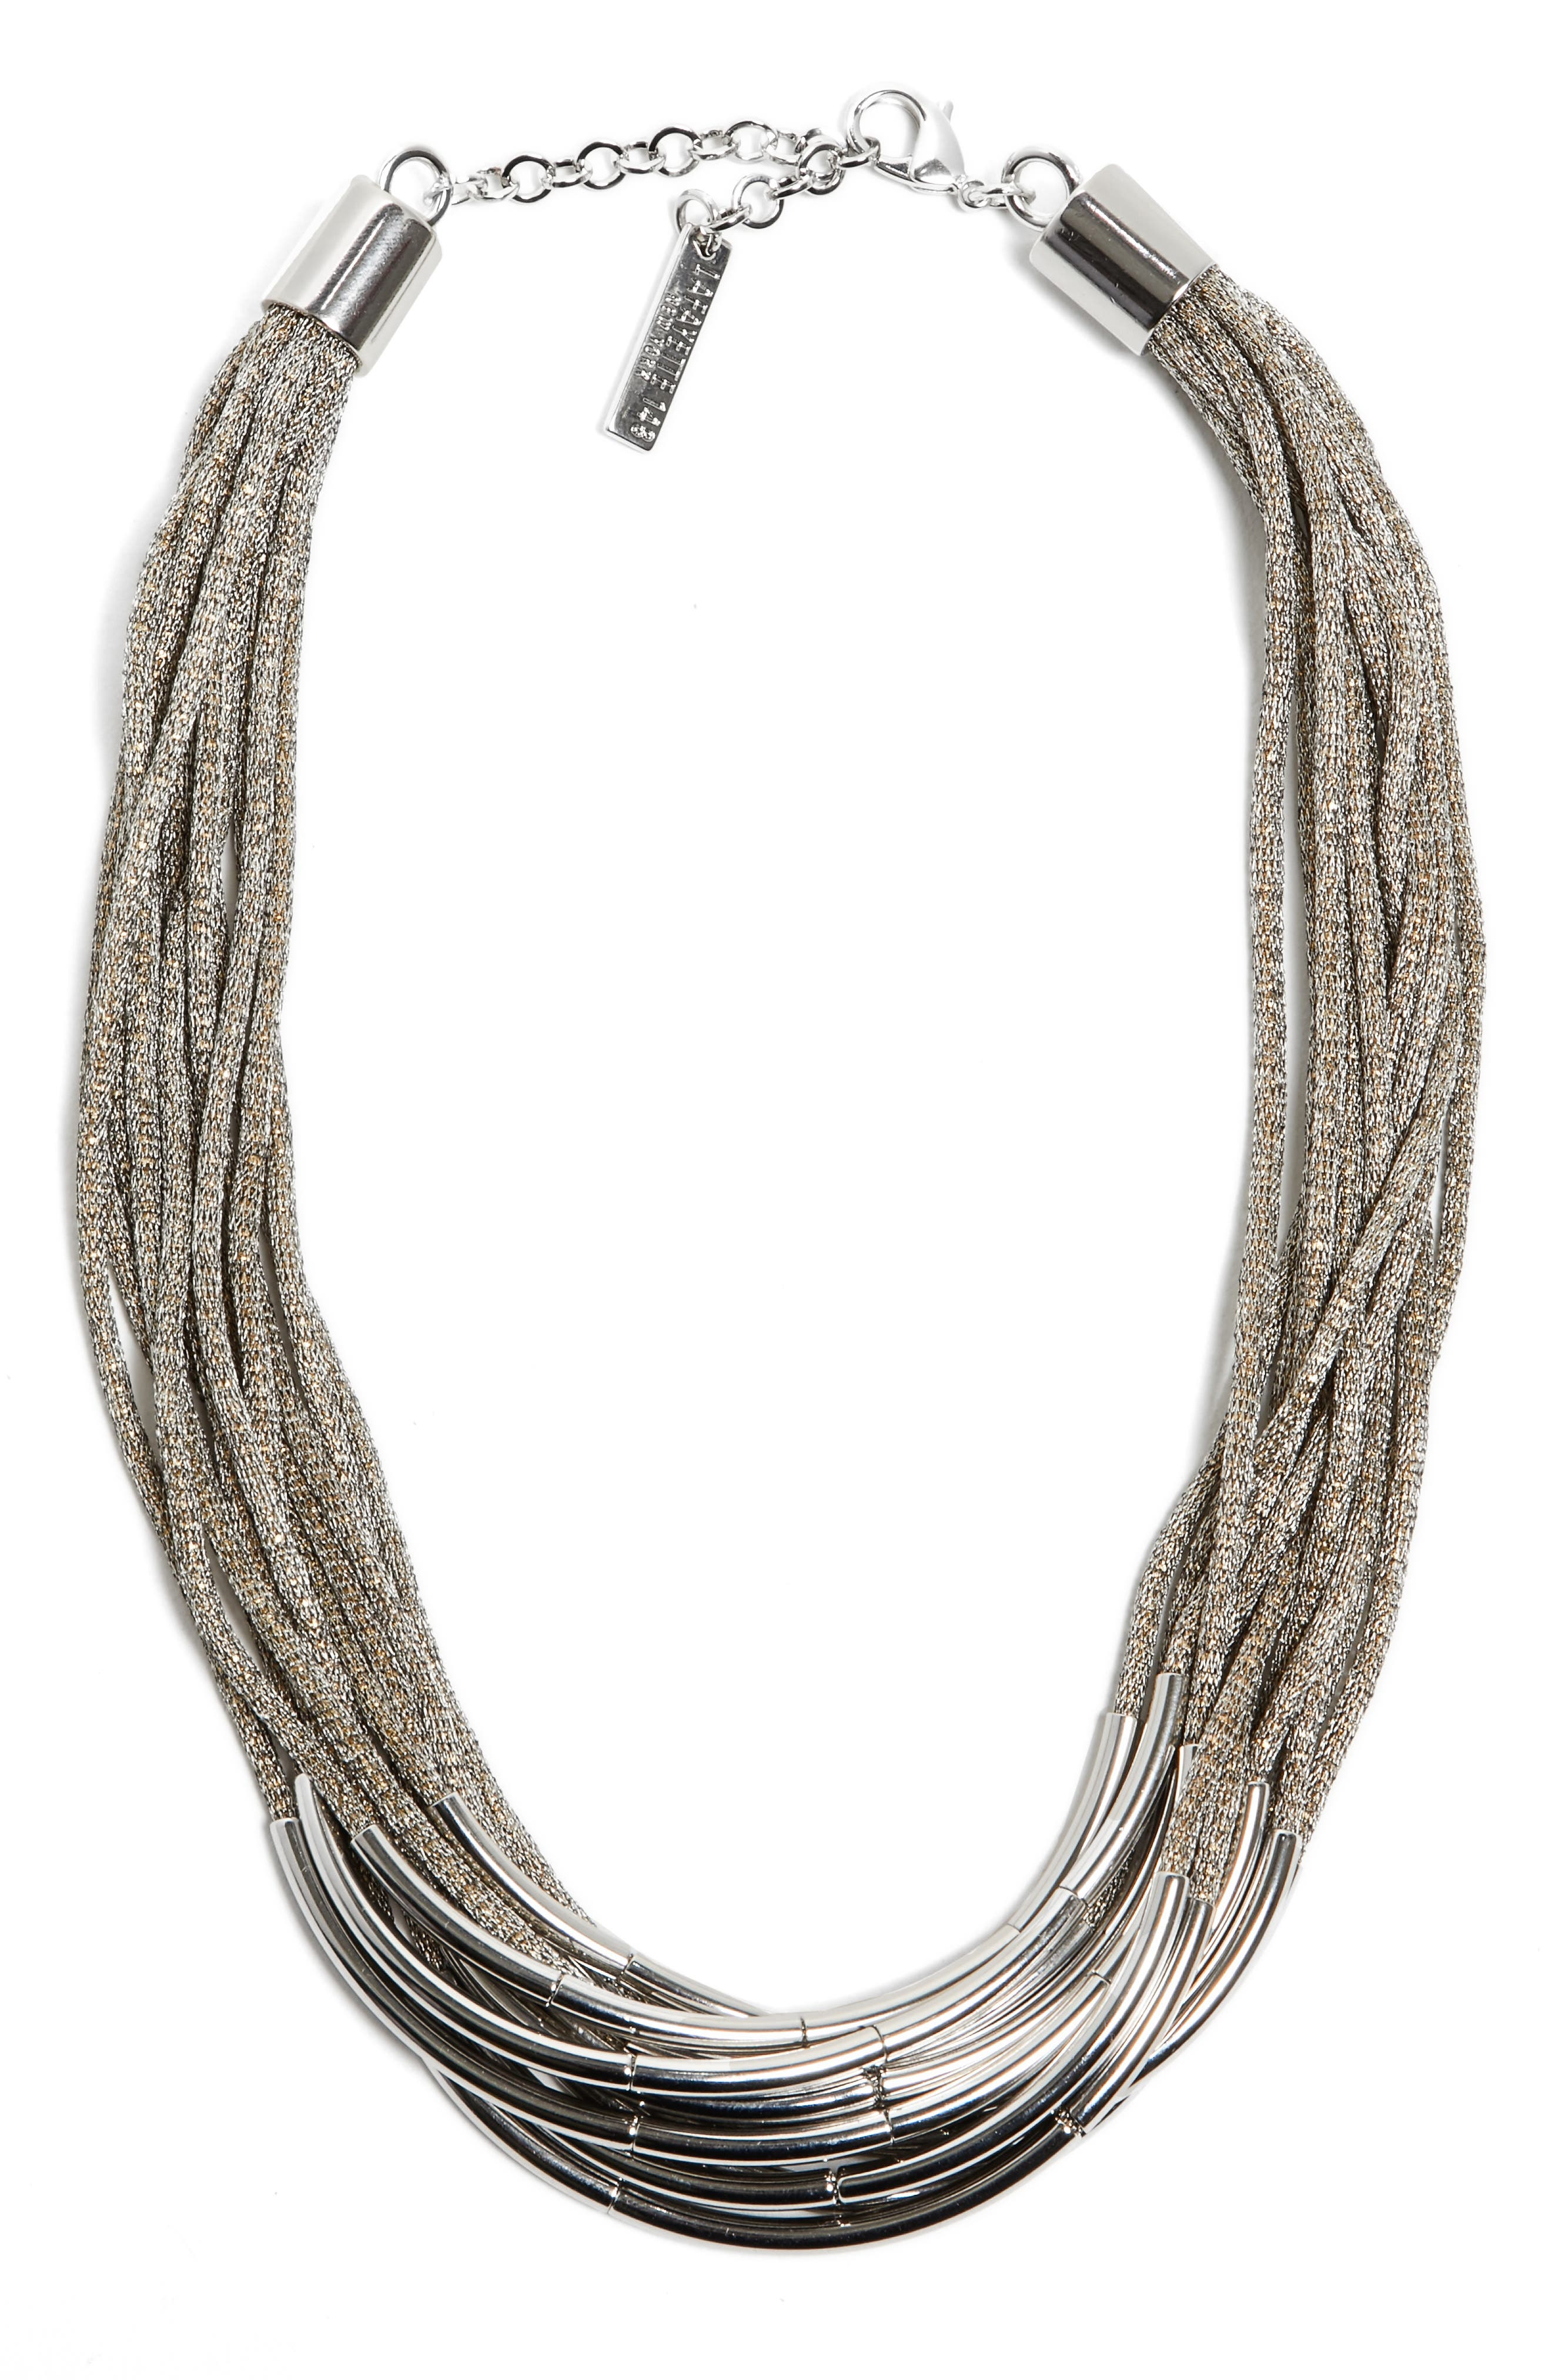 Multistrand Statement Necklace,                             Main thumbnail 1, color,                             Cement